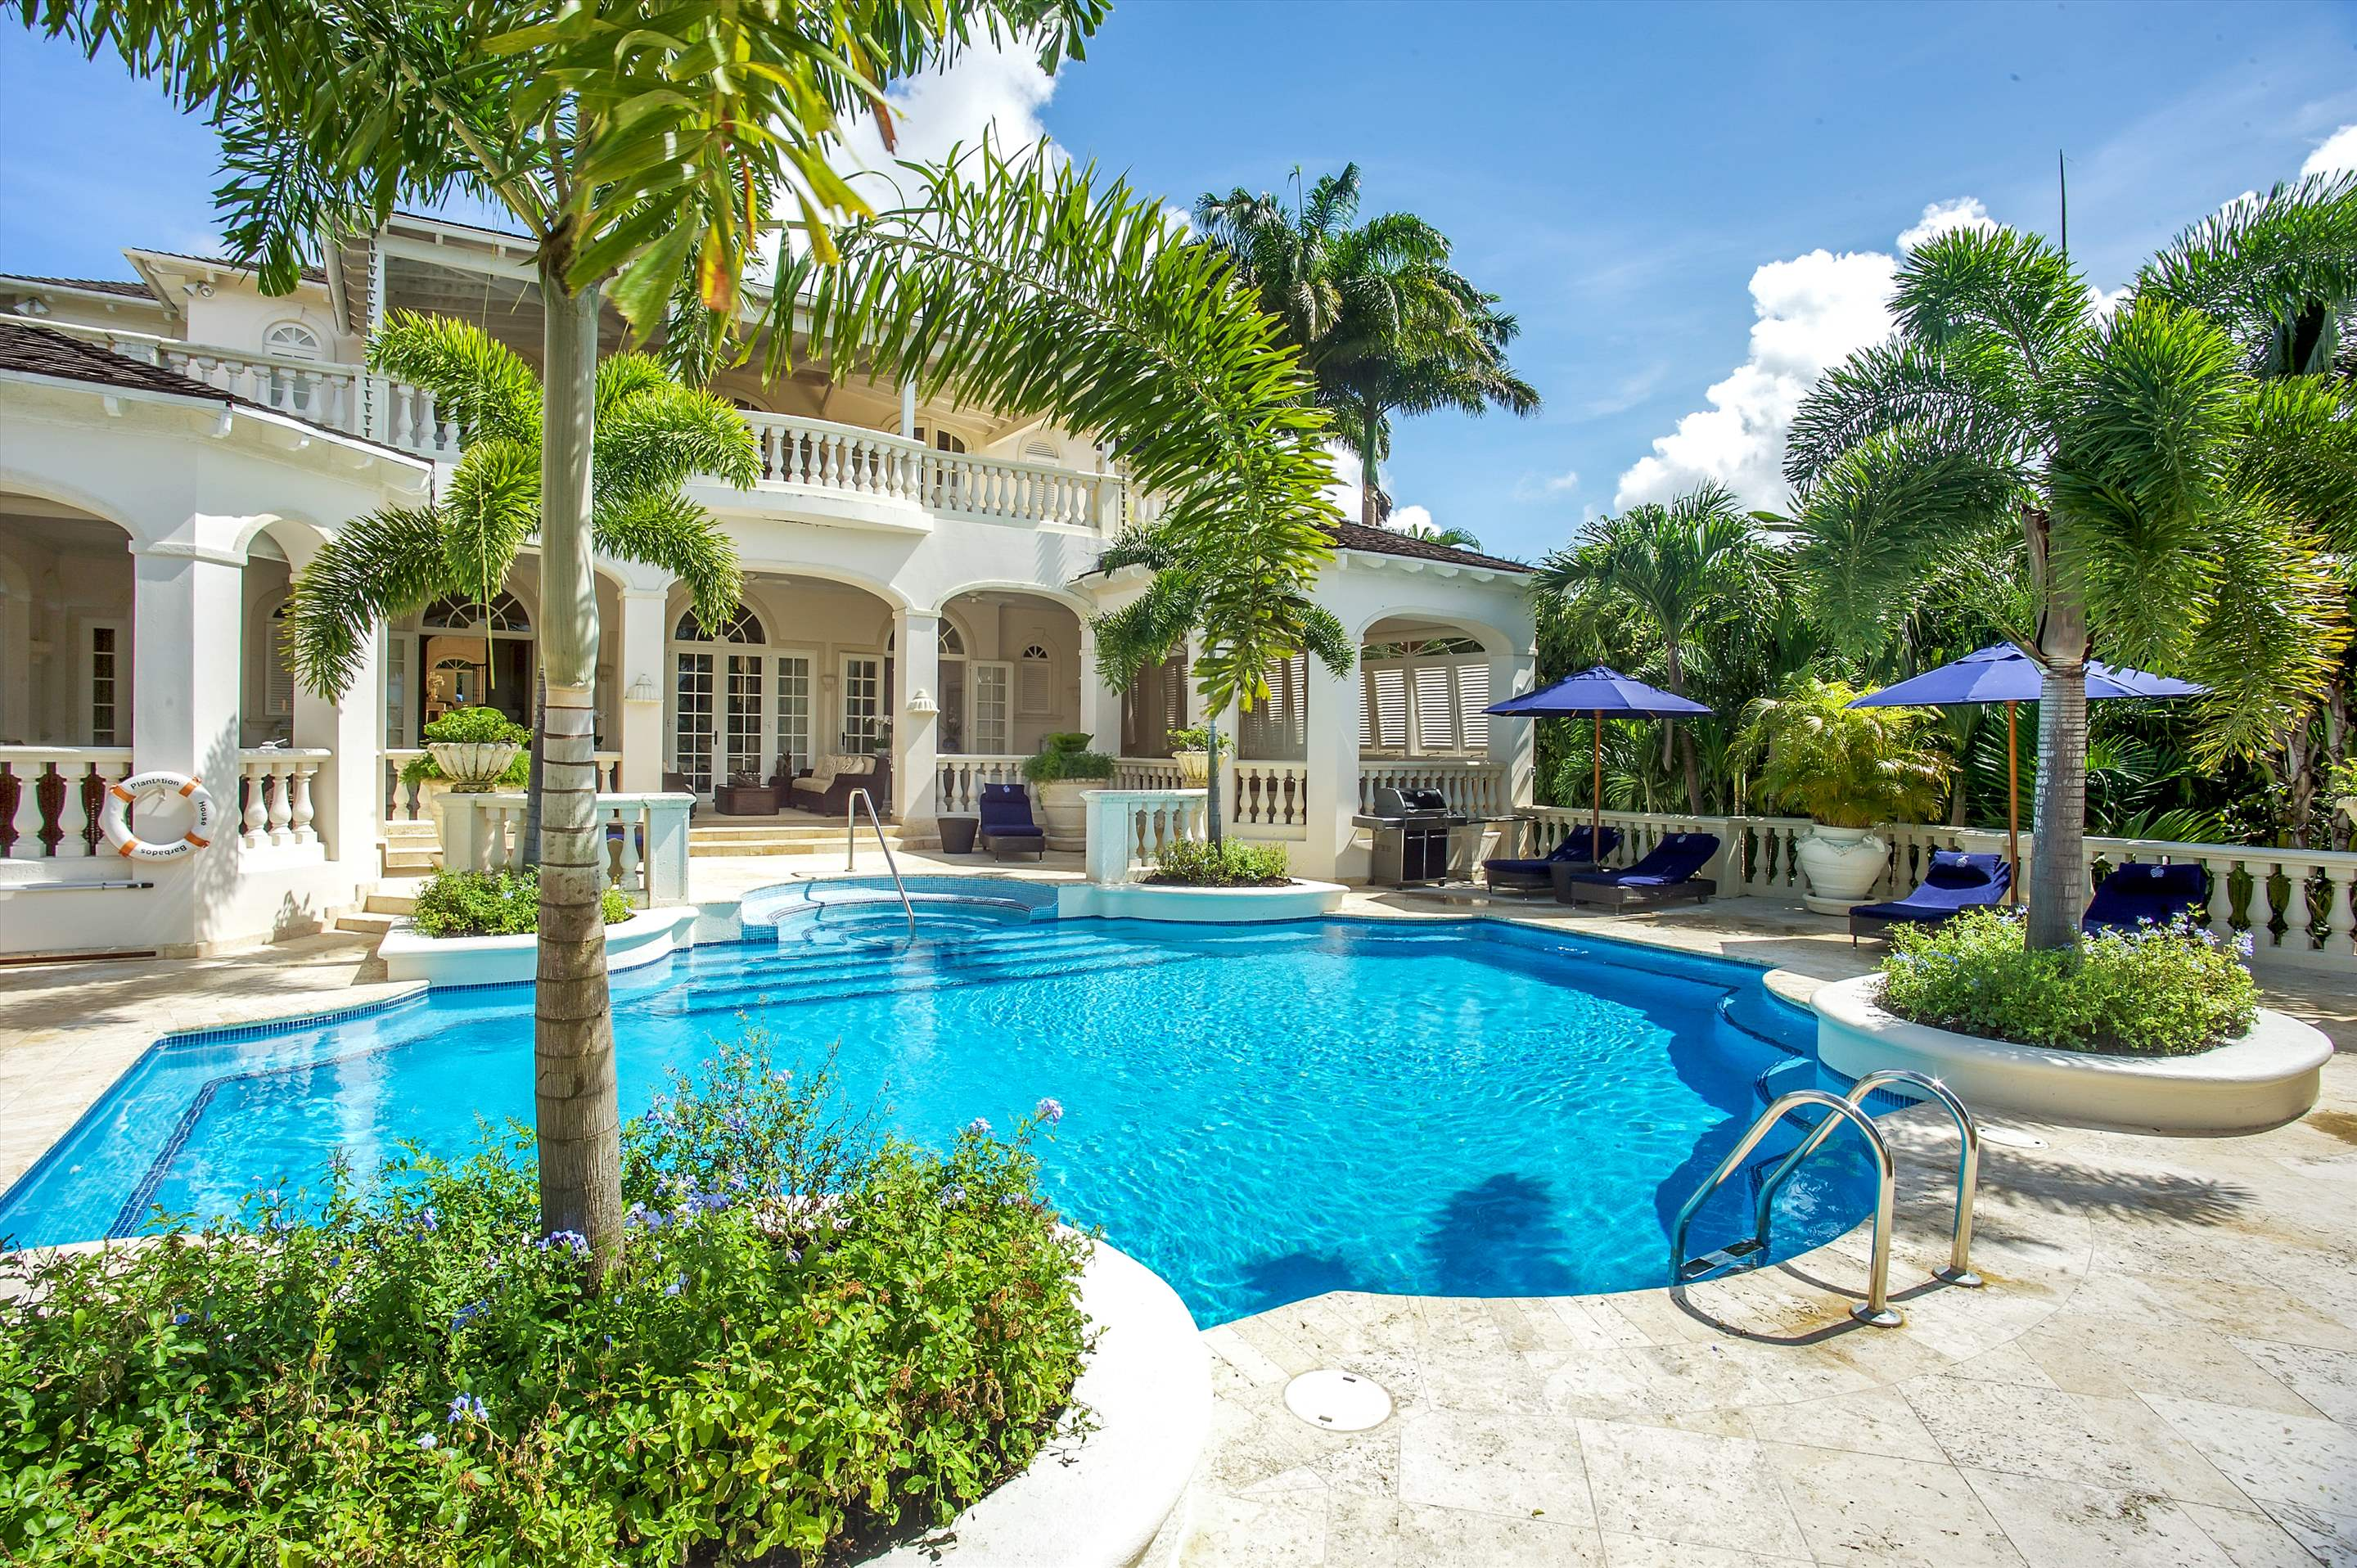 Plantation House, Royal Westmoreland, 6 bedroom, 6 bedroom villa in St. James & West Coast, Barbados Photo #3